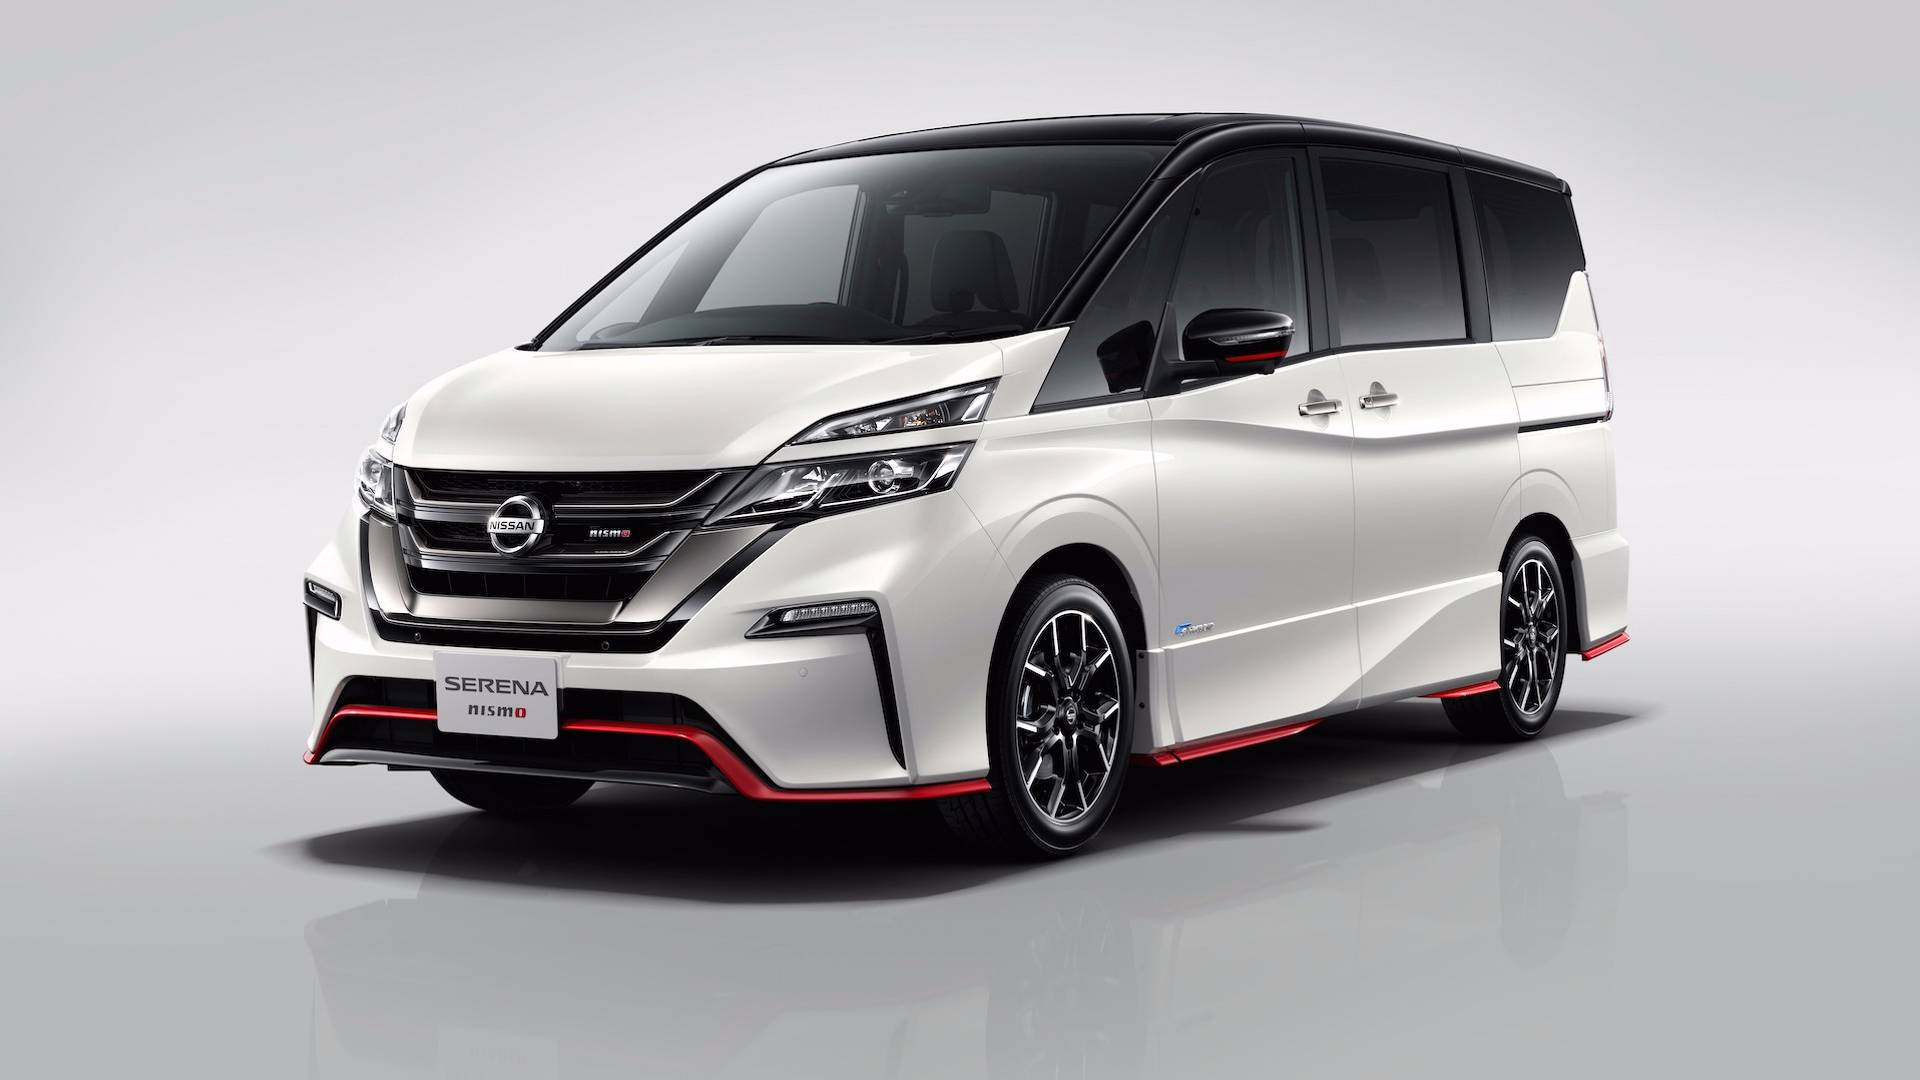 Nissan Serena Minivan Gets A Hot Nismo Sport Package For Tokyo a3926f45d